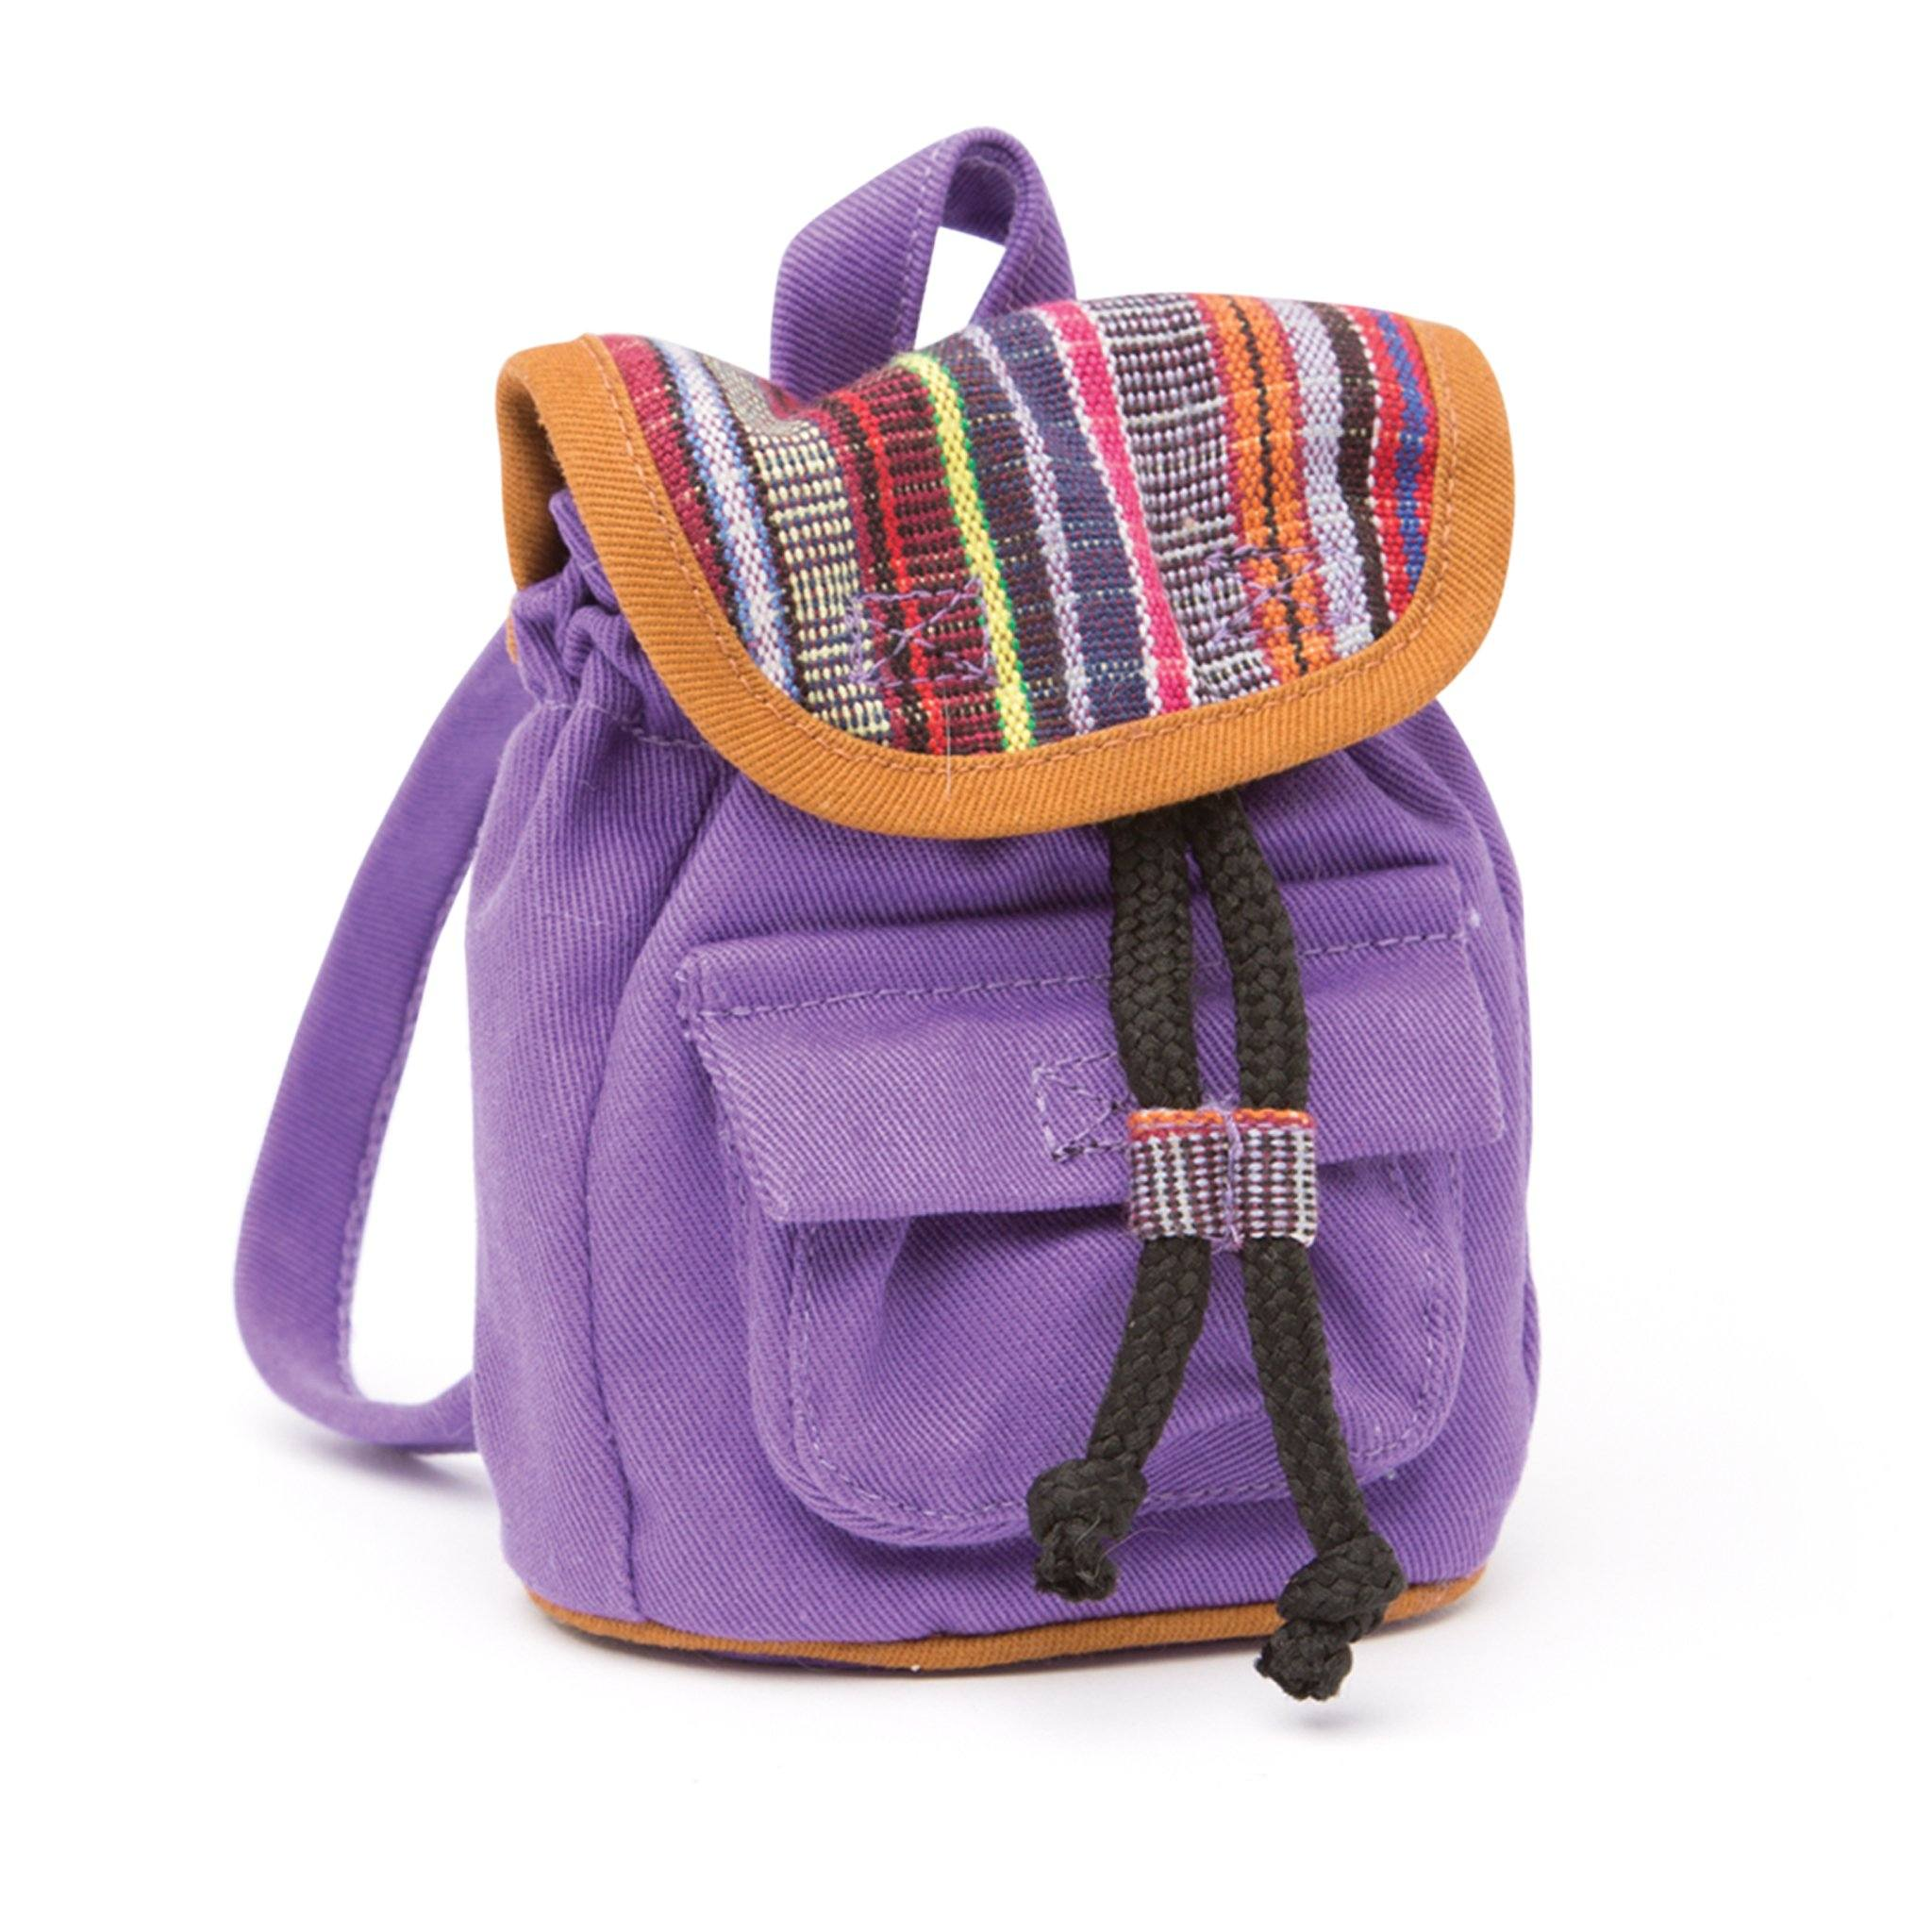 Purple and tapestry backpack for 18 inch dolls.